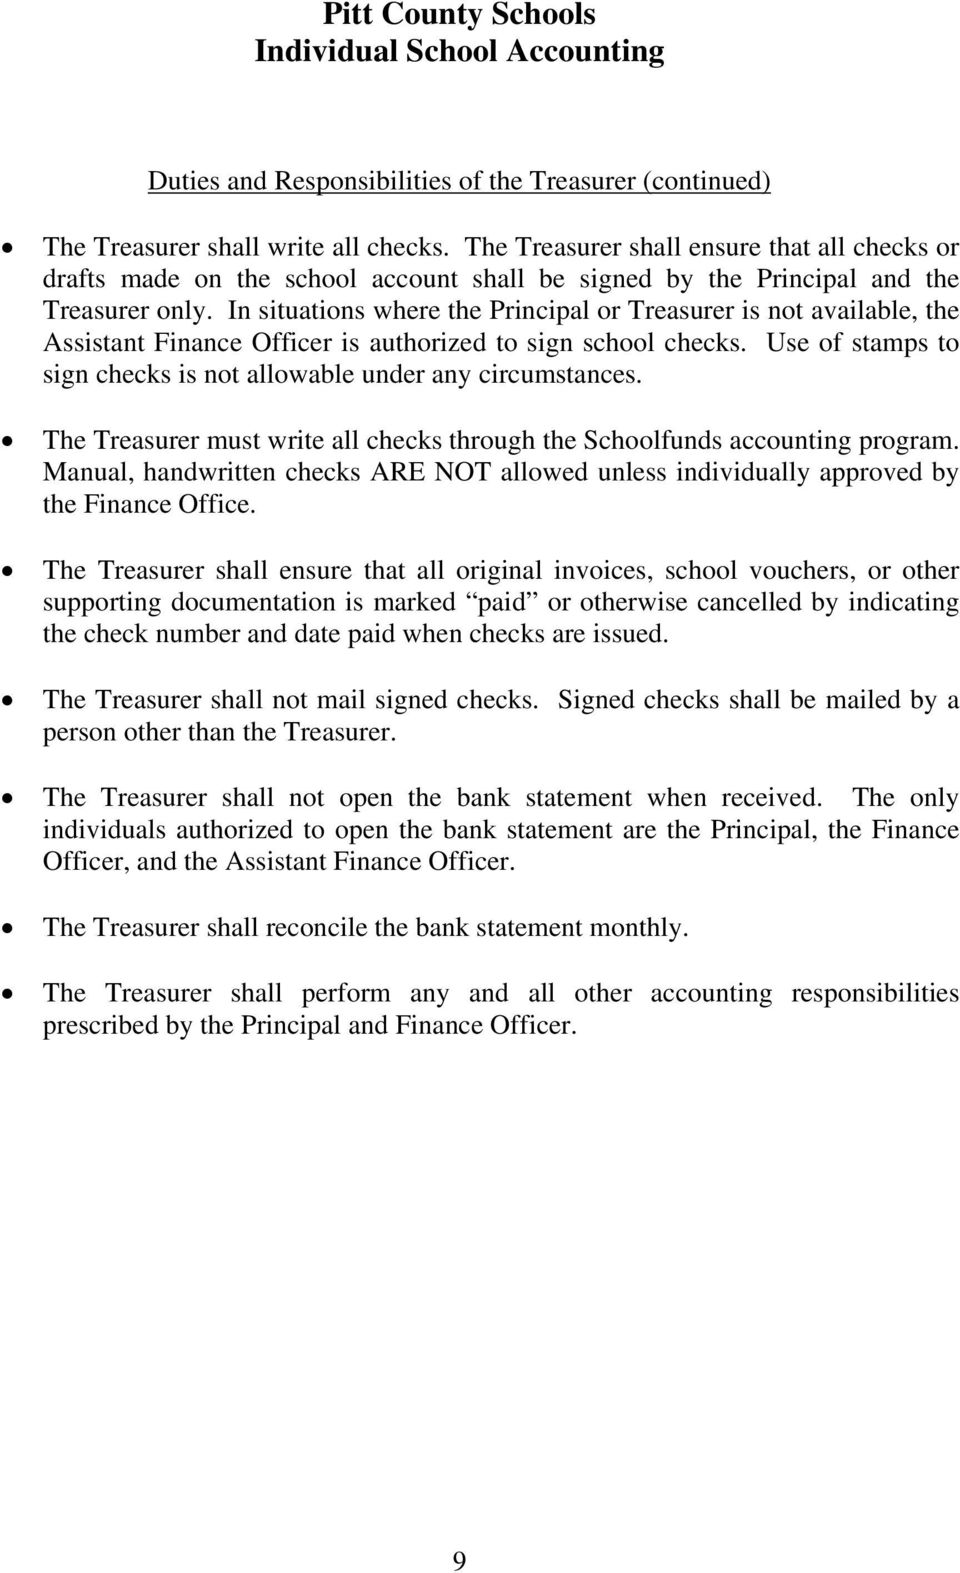 In situations where the Principal or Treasurer is not available, the Assistant Finance Officer is authorized to sign school checks.